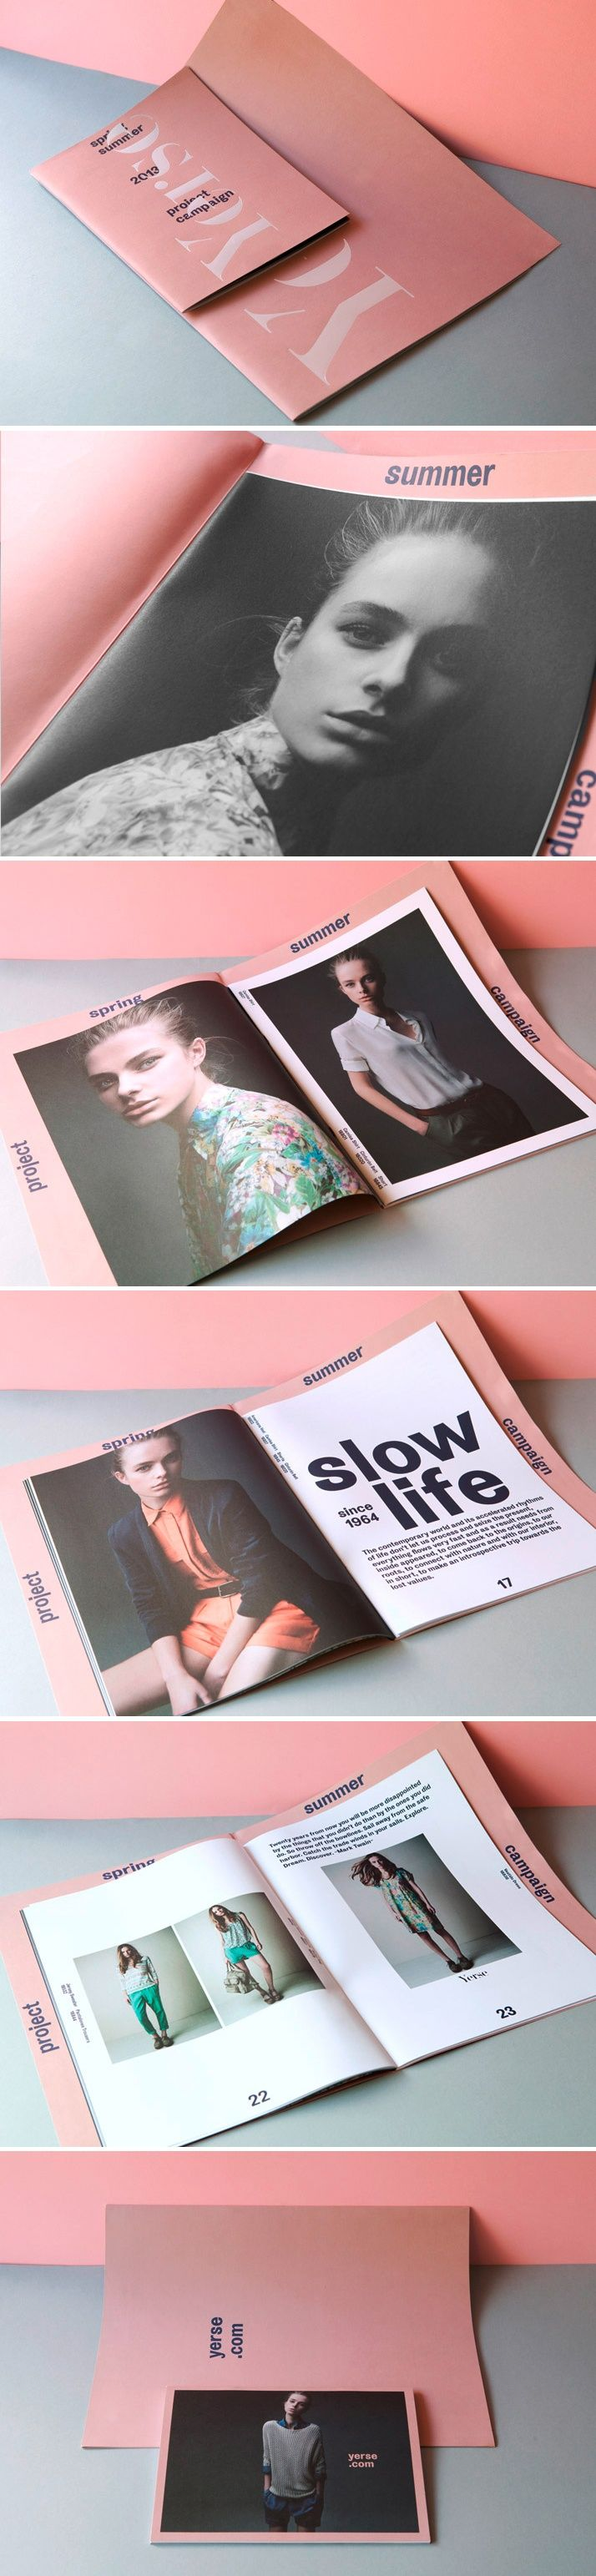 A look book with good balance of imagery and type.